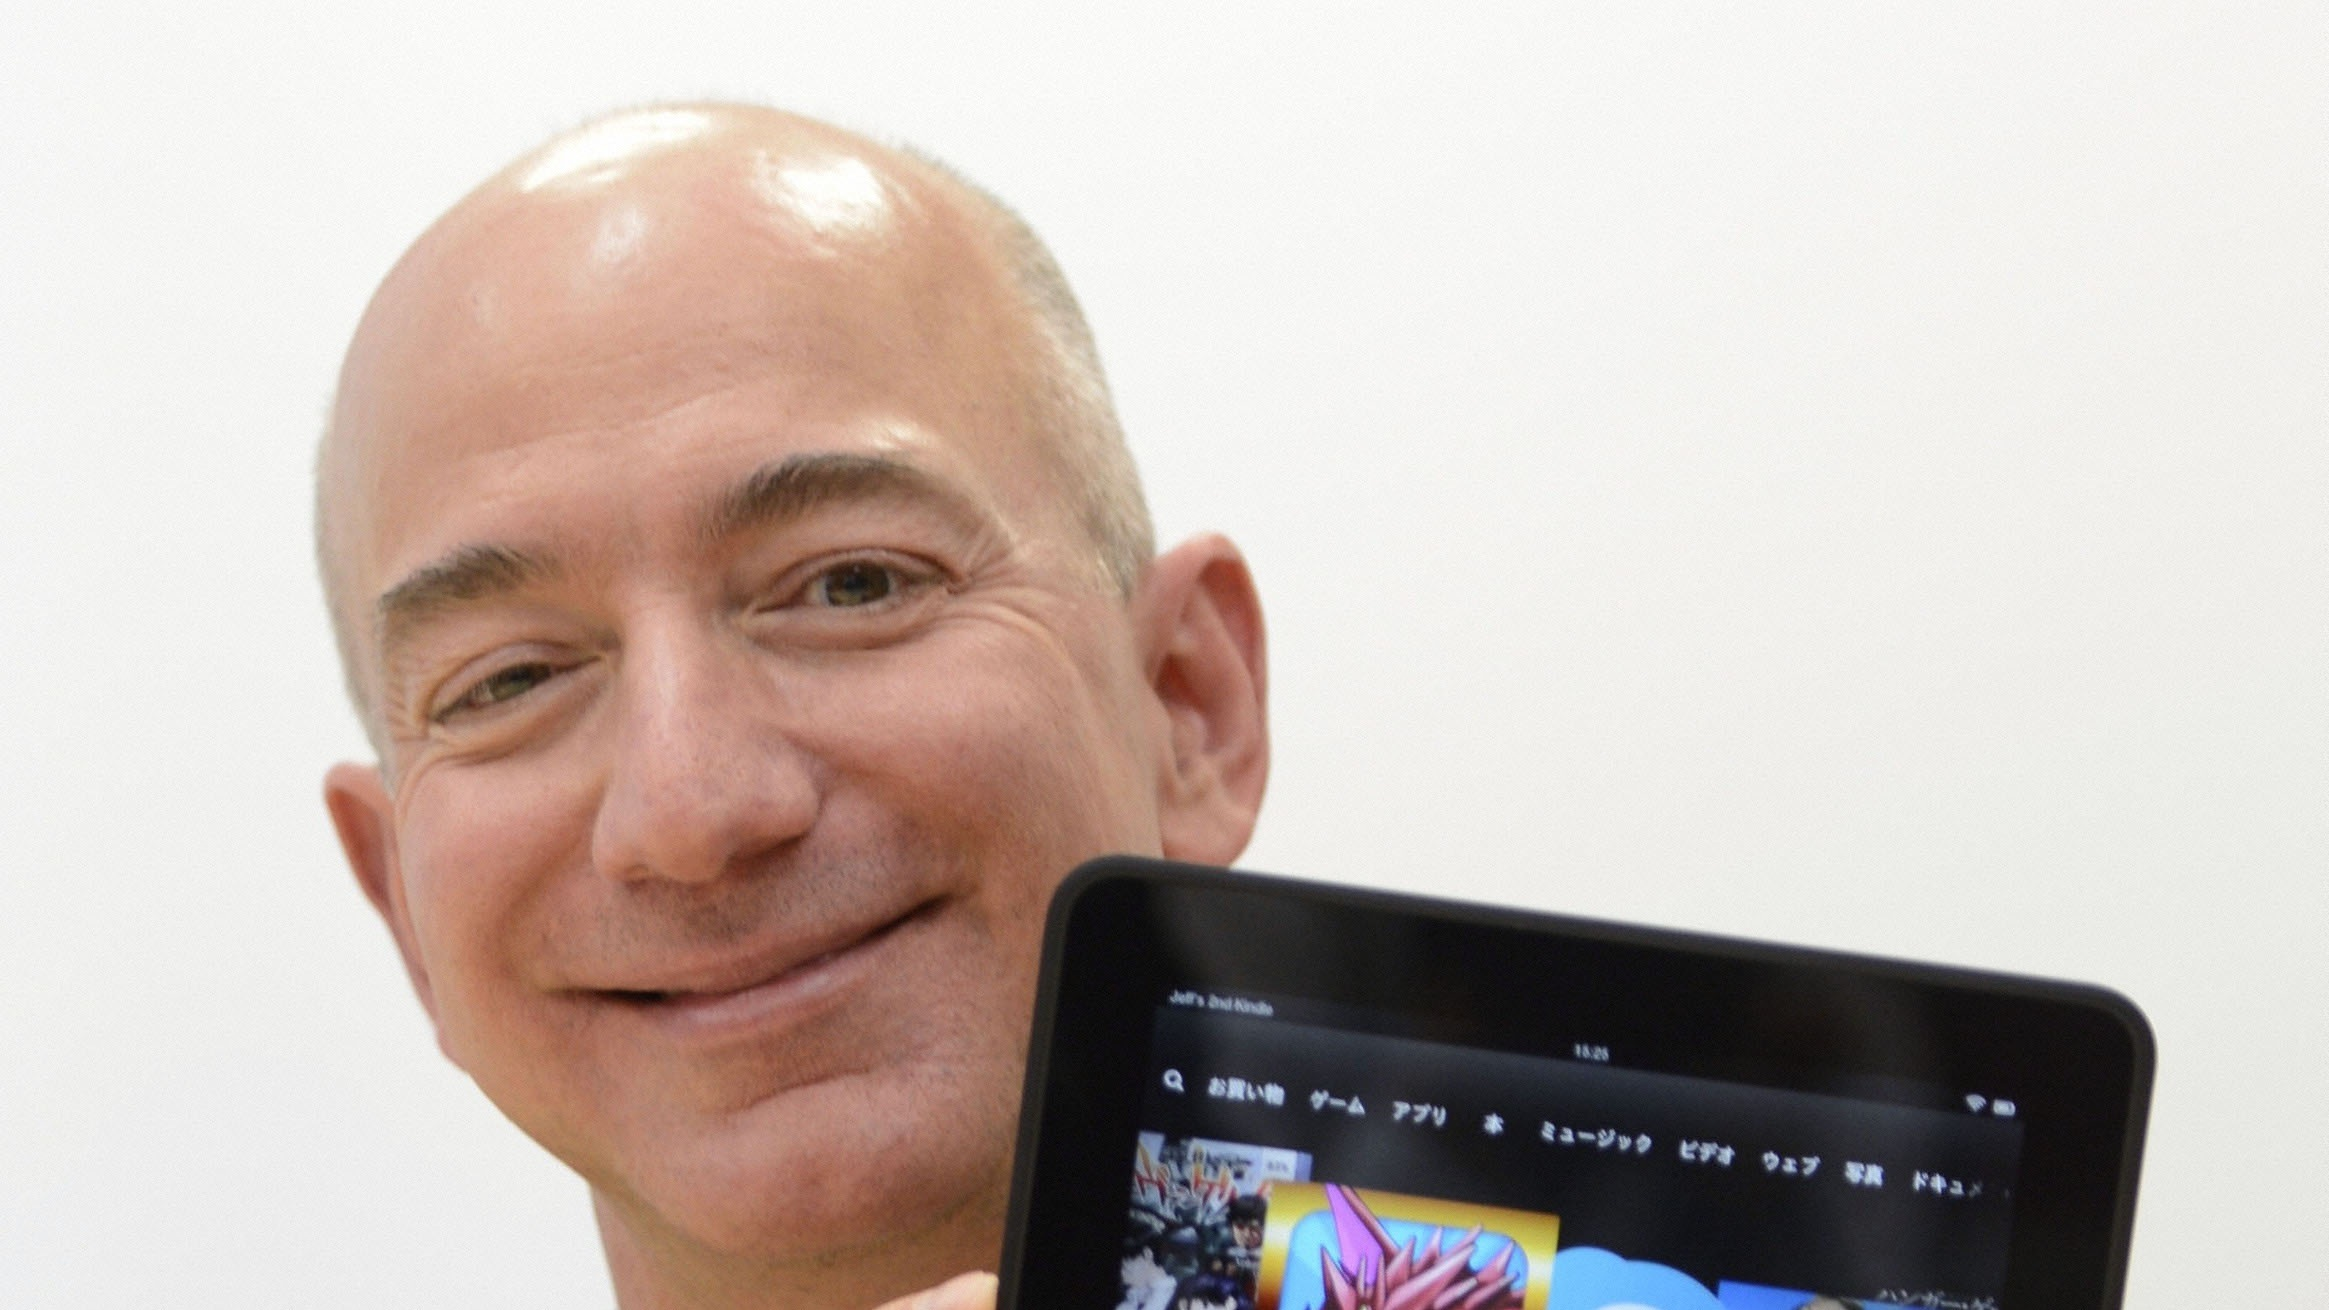 TOKYO, Japan - Amazon.com Inc. chief executive officer Jeff Bezos holds a Kindle Fire HD in Tokyo on Oct. 24, 2012. The U.S. online retailer said the same day it will start selling Kindle electronic books and readers in Japan. (Kyodo via AP Images)